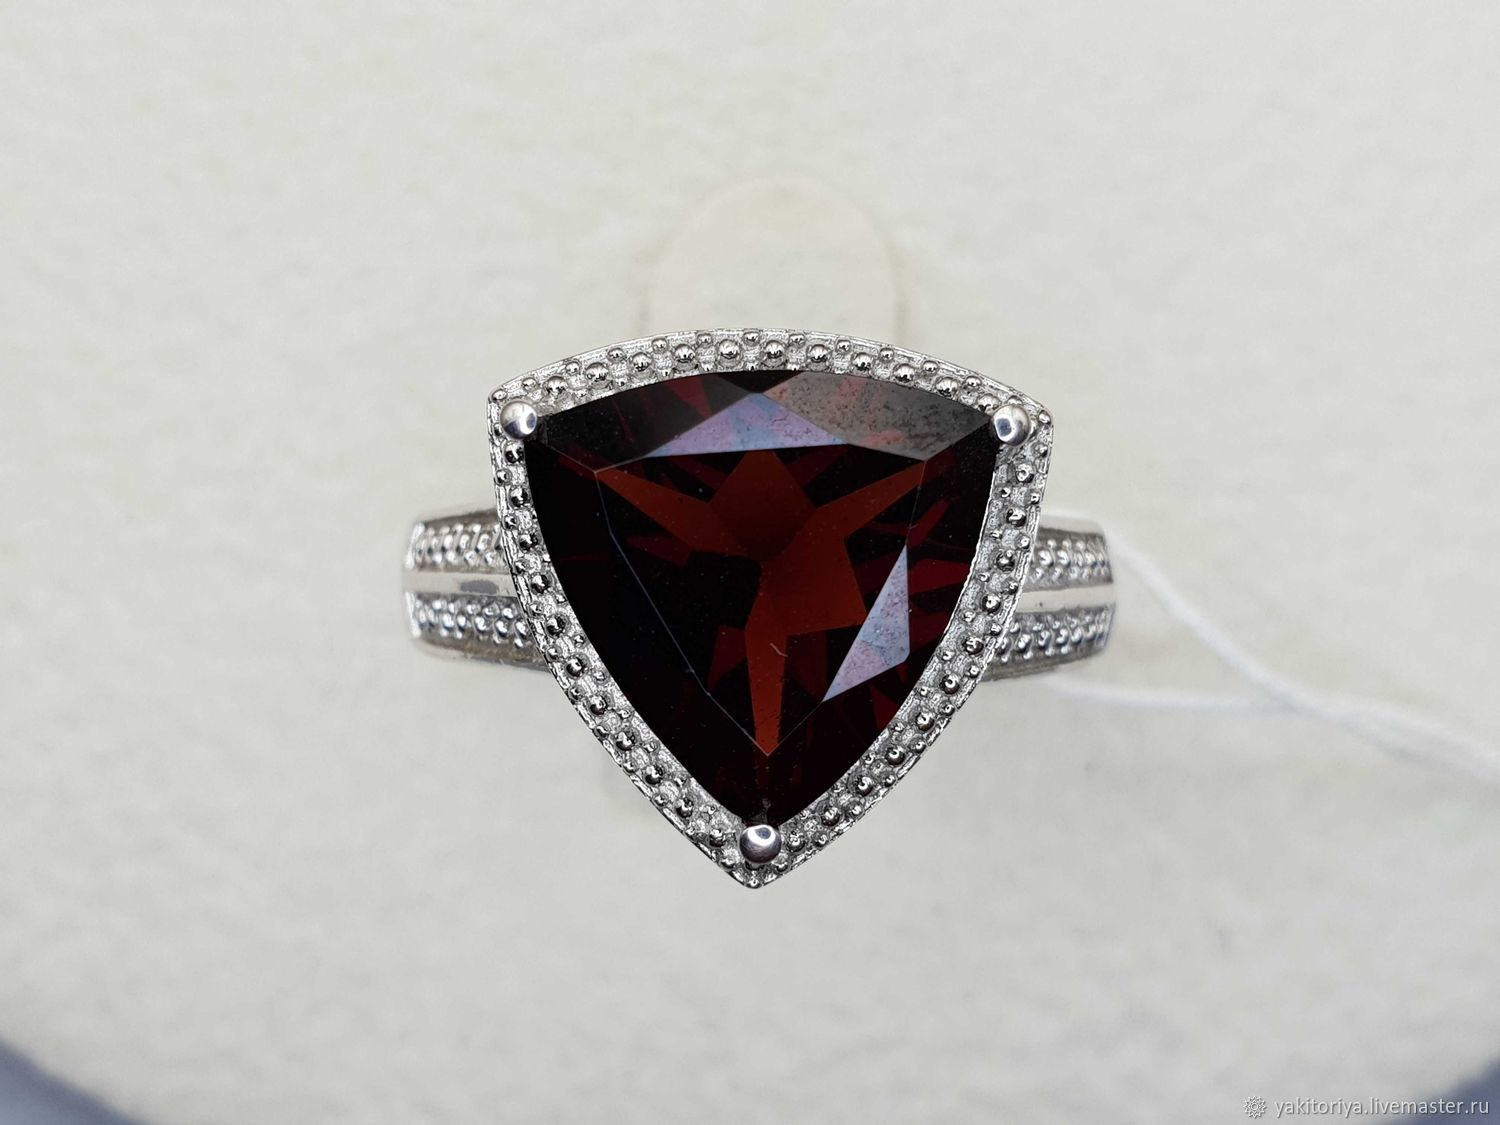 Silver ring with garnet 12h12 mm, Rings, Moscow,  Фото №1